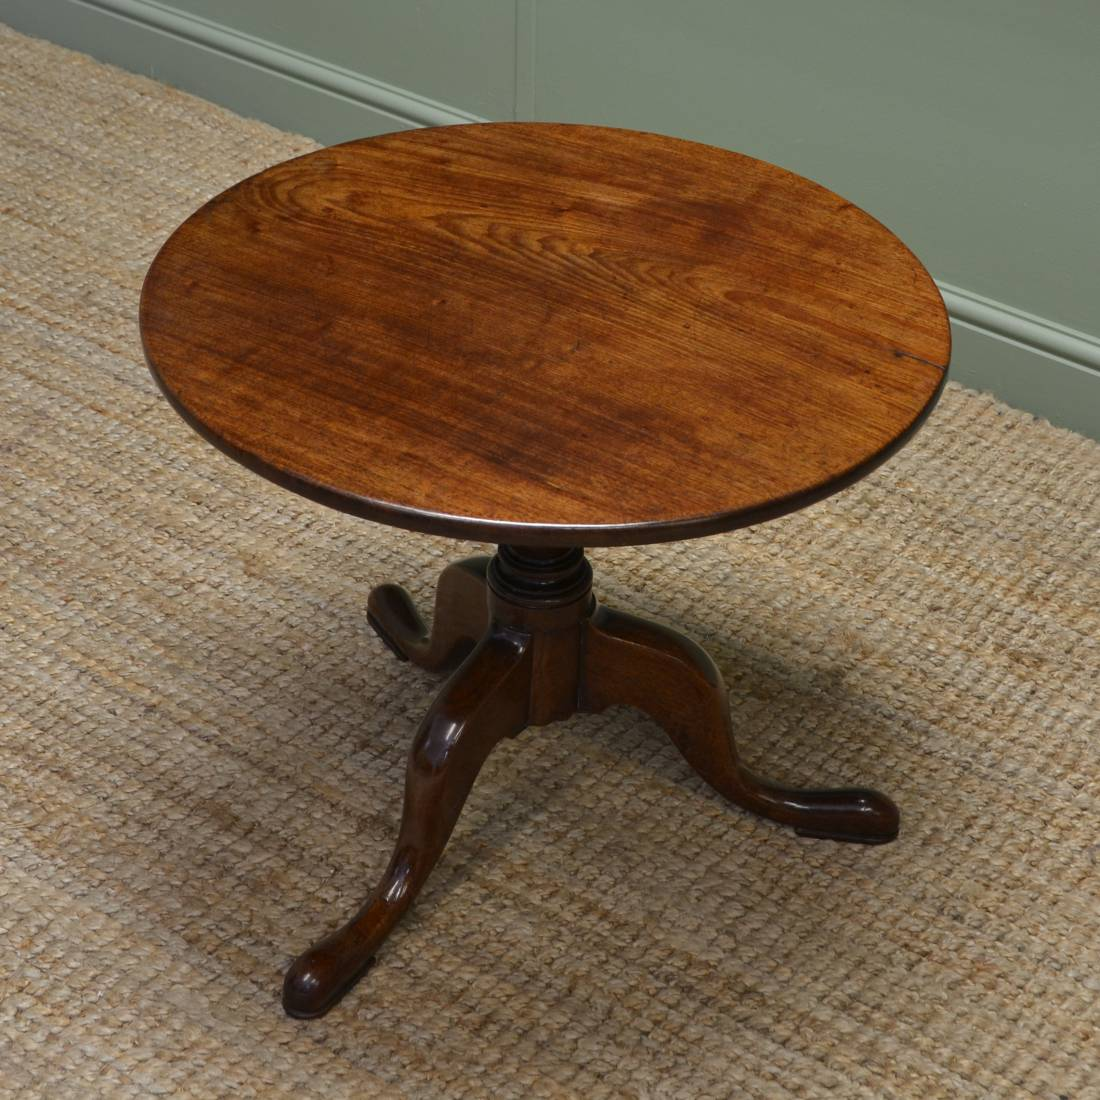 Antique Coffee Table Uk: Antique Coffee Tables